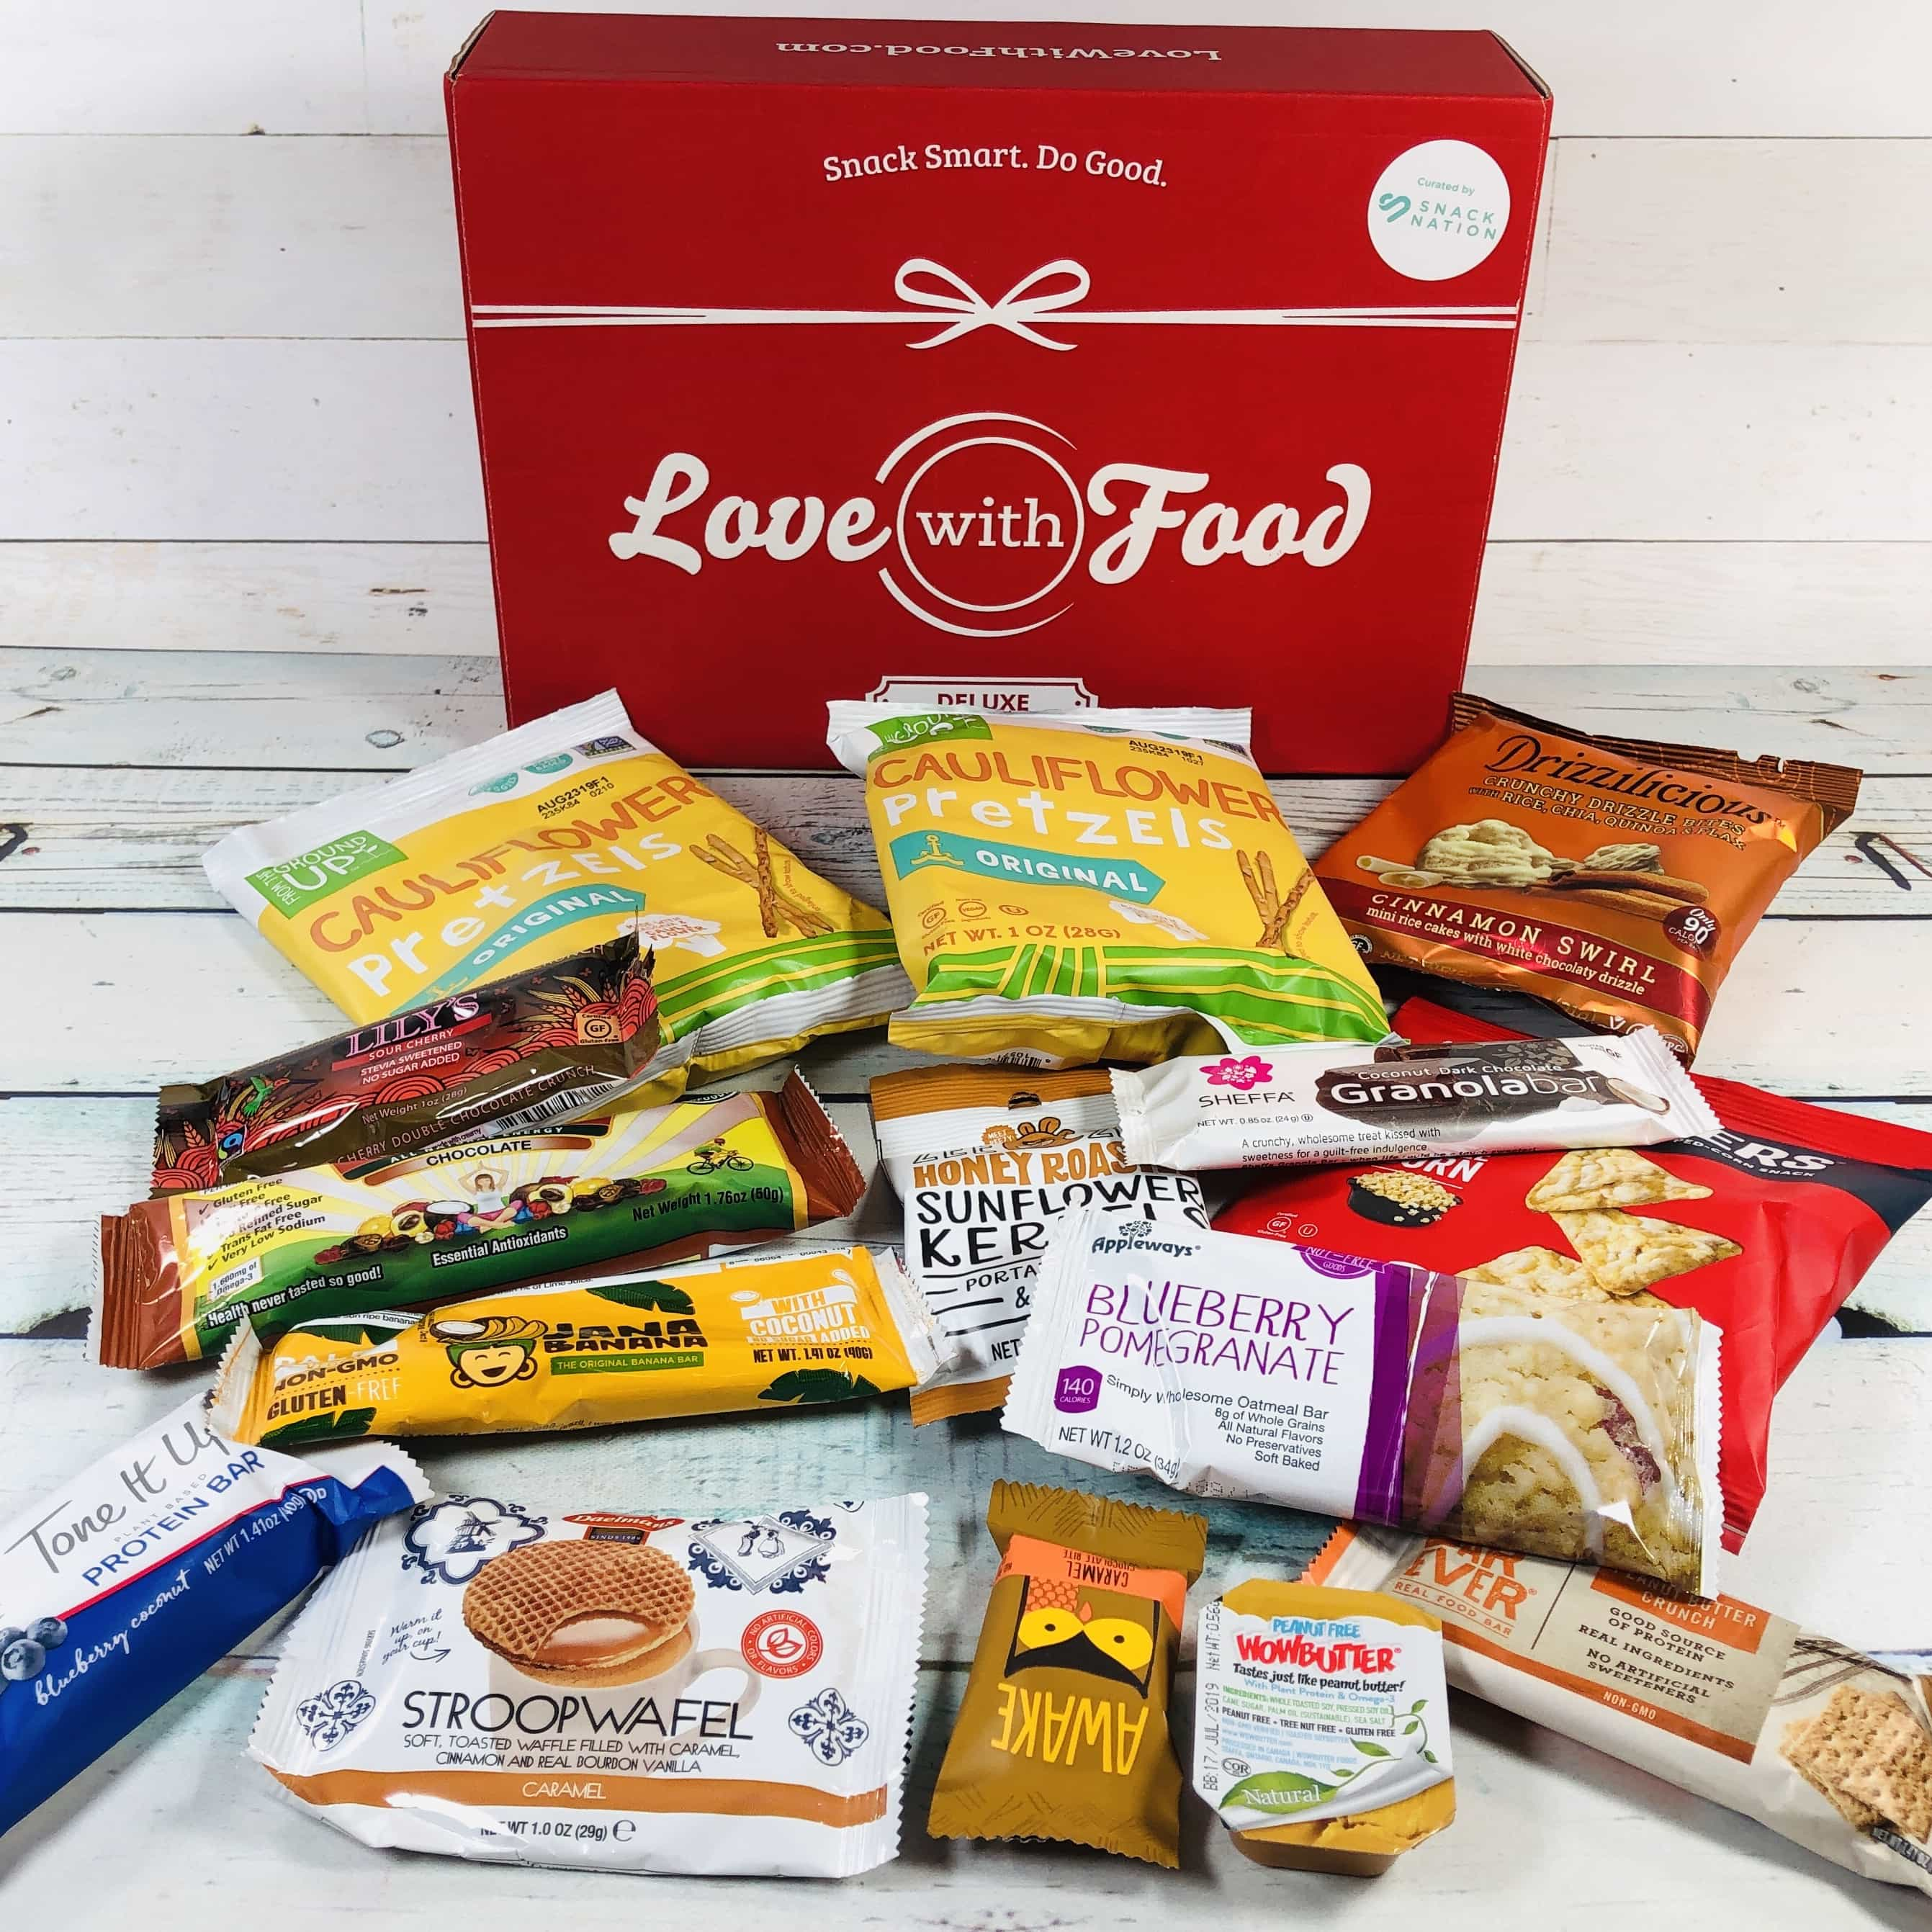 Love With Food February 2019 Deluxe Box Review + Coupon!